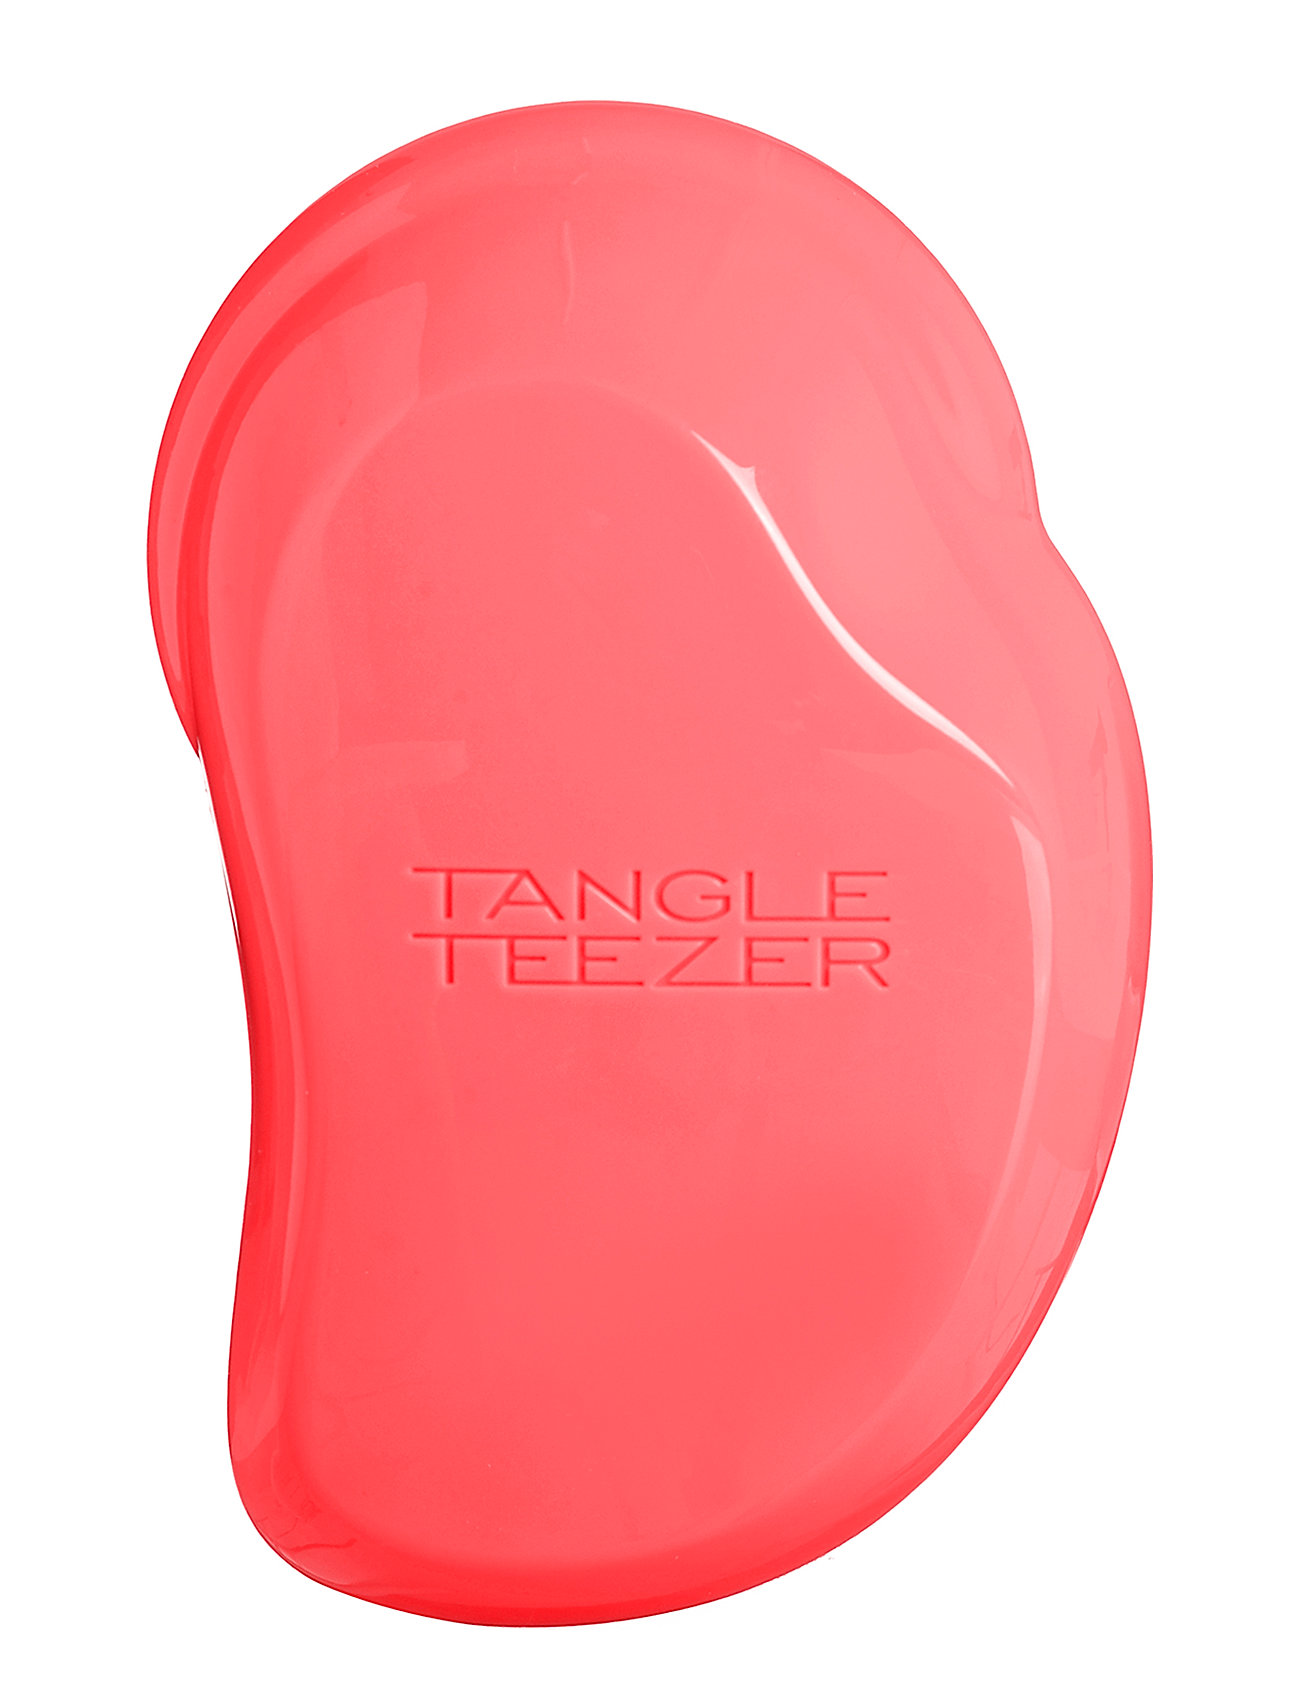 Tangle Teezer Tangle Teezer Original Coral Glory - NO COLOUR